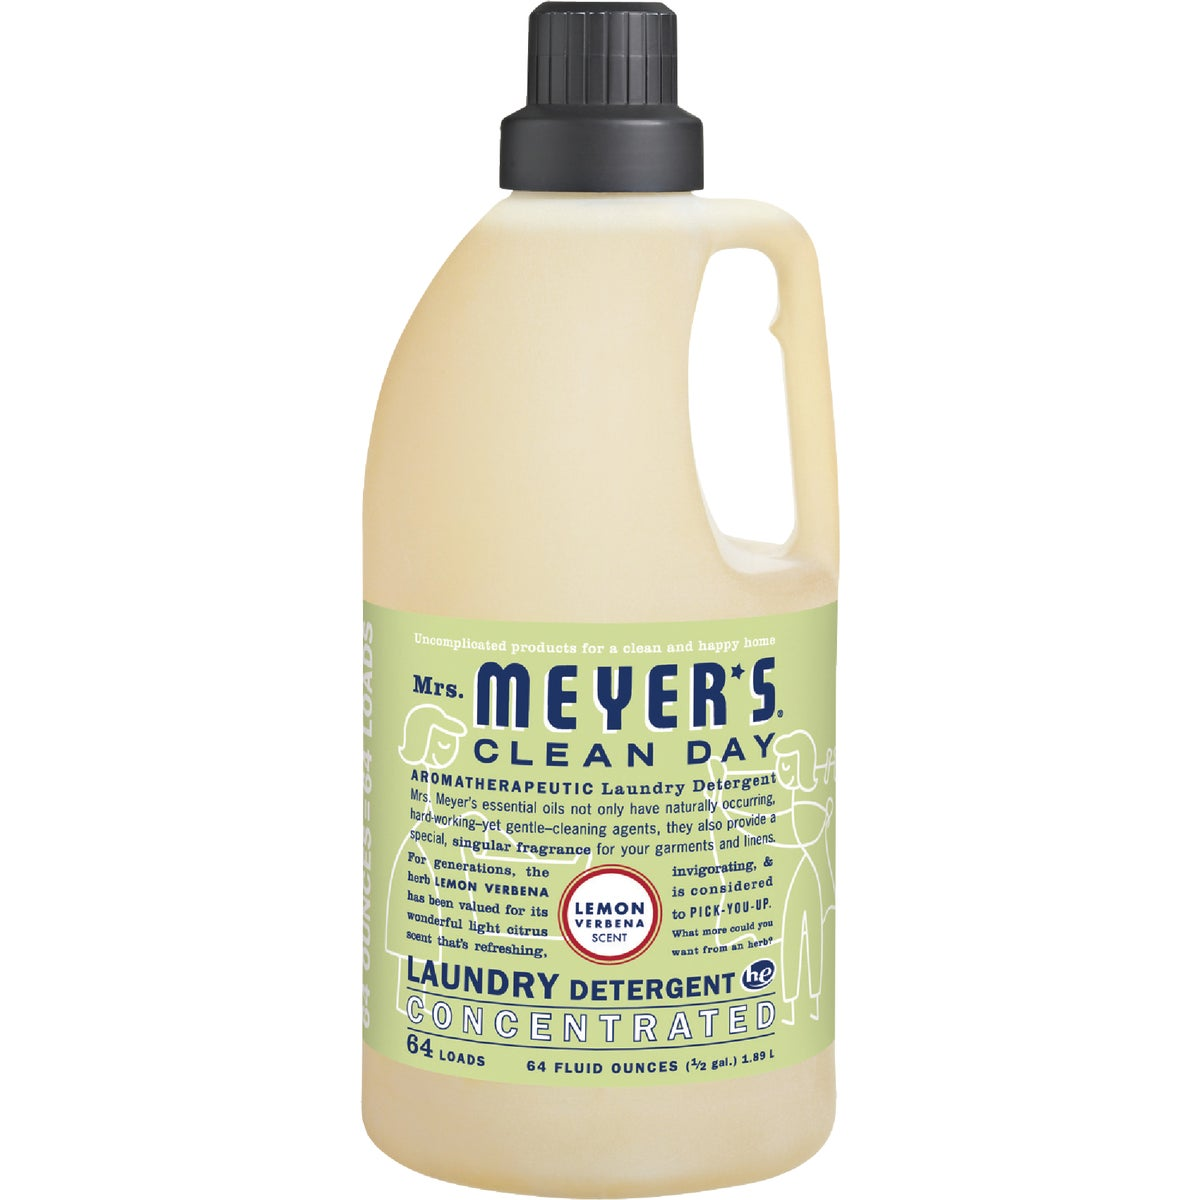 Mrs Meyer's Clean Day Laundry Detergent